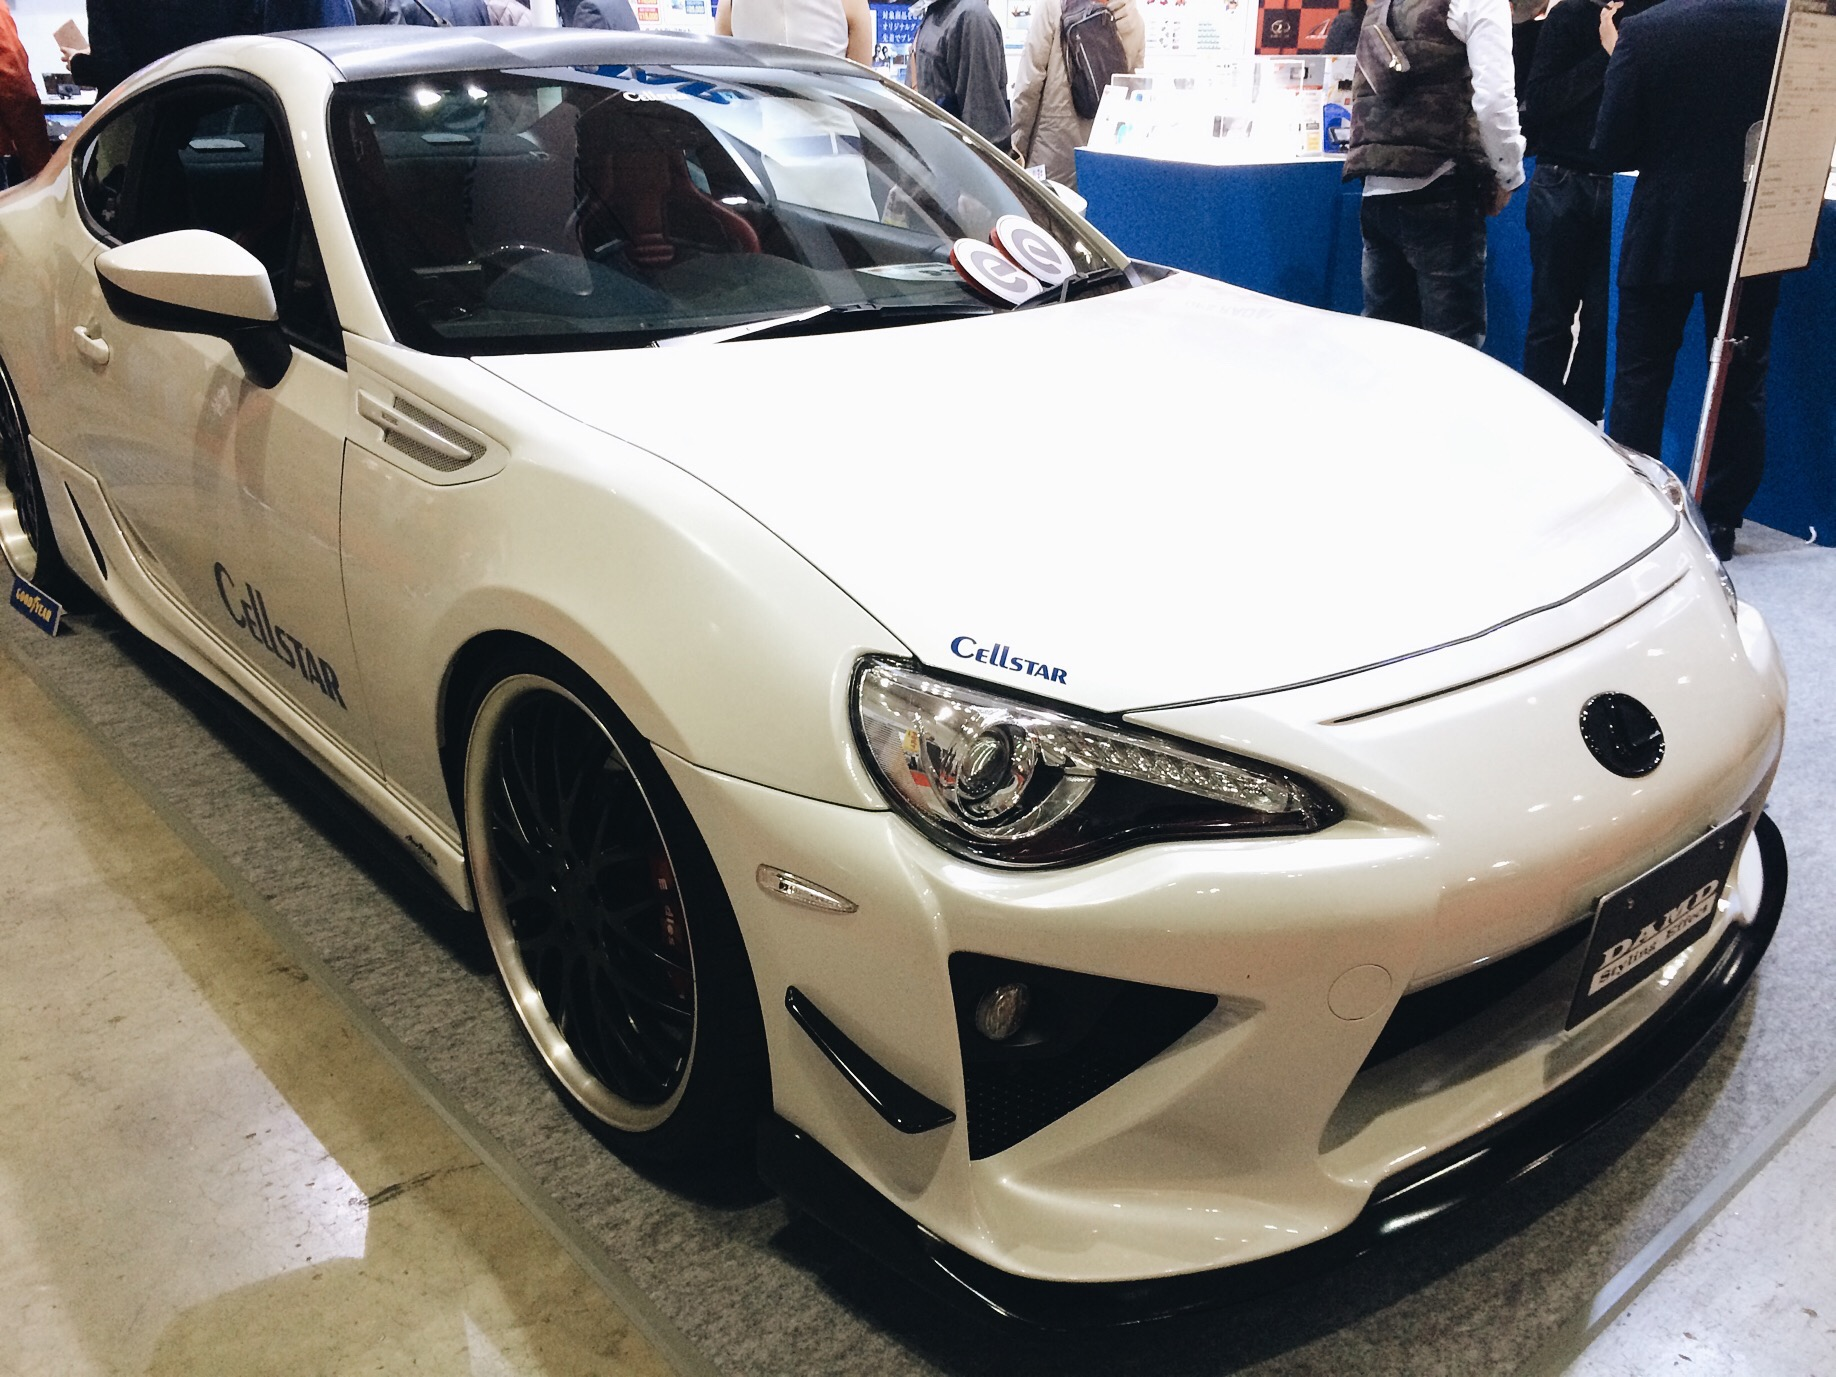 This was a weird one for me, its a Scion FR-S but it has a Lexus badge, with the lexus signature design and LFA style front bumper and exhaust pipes.